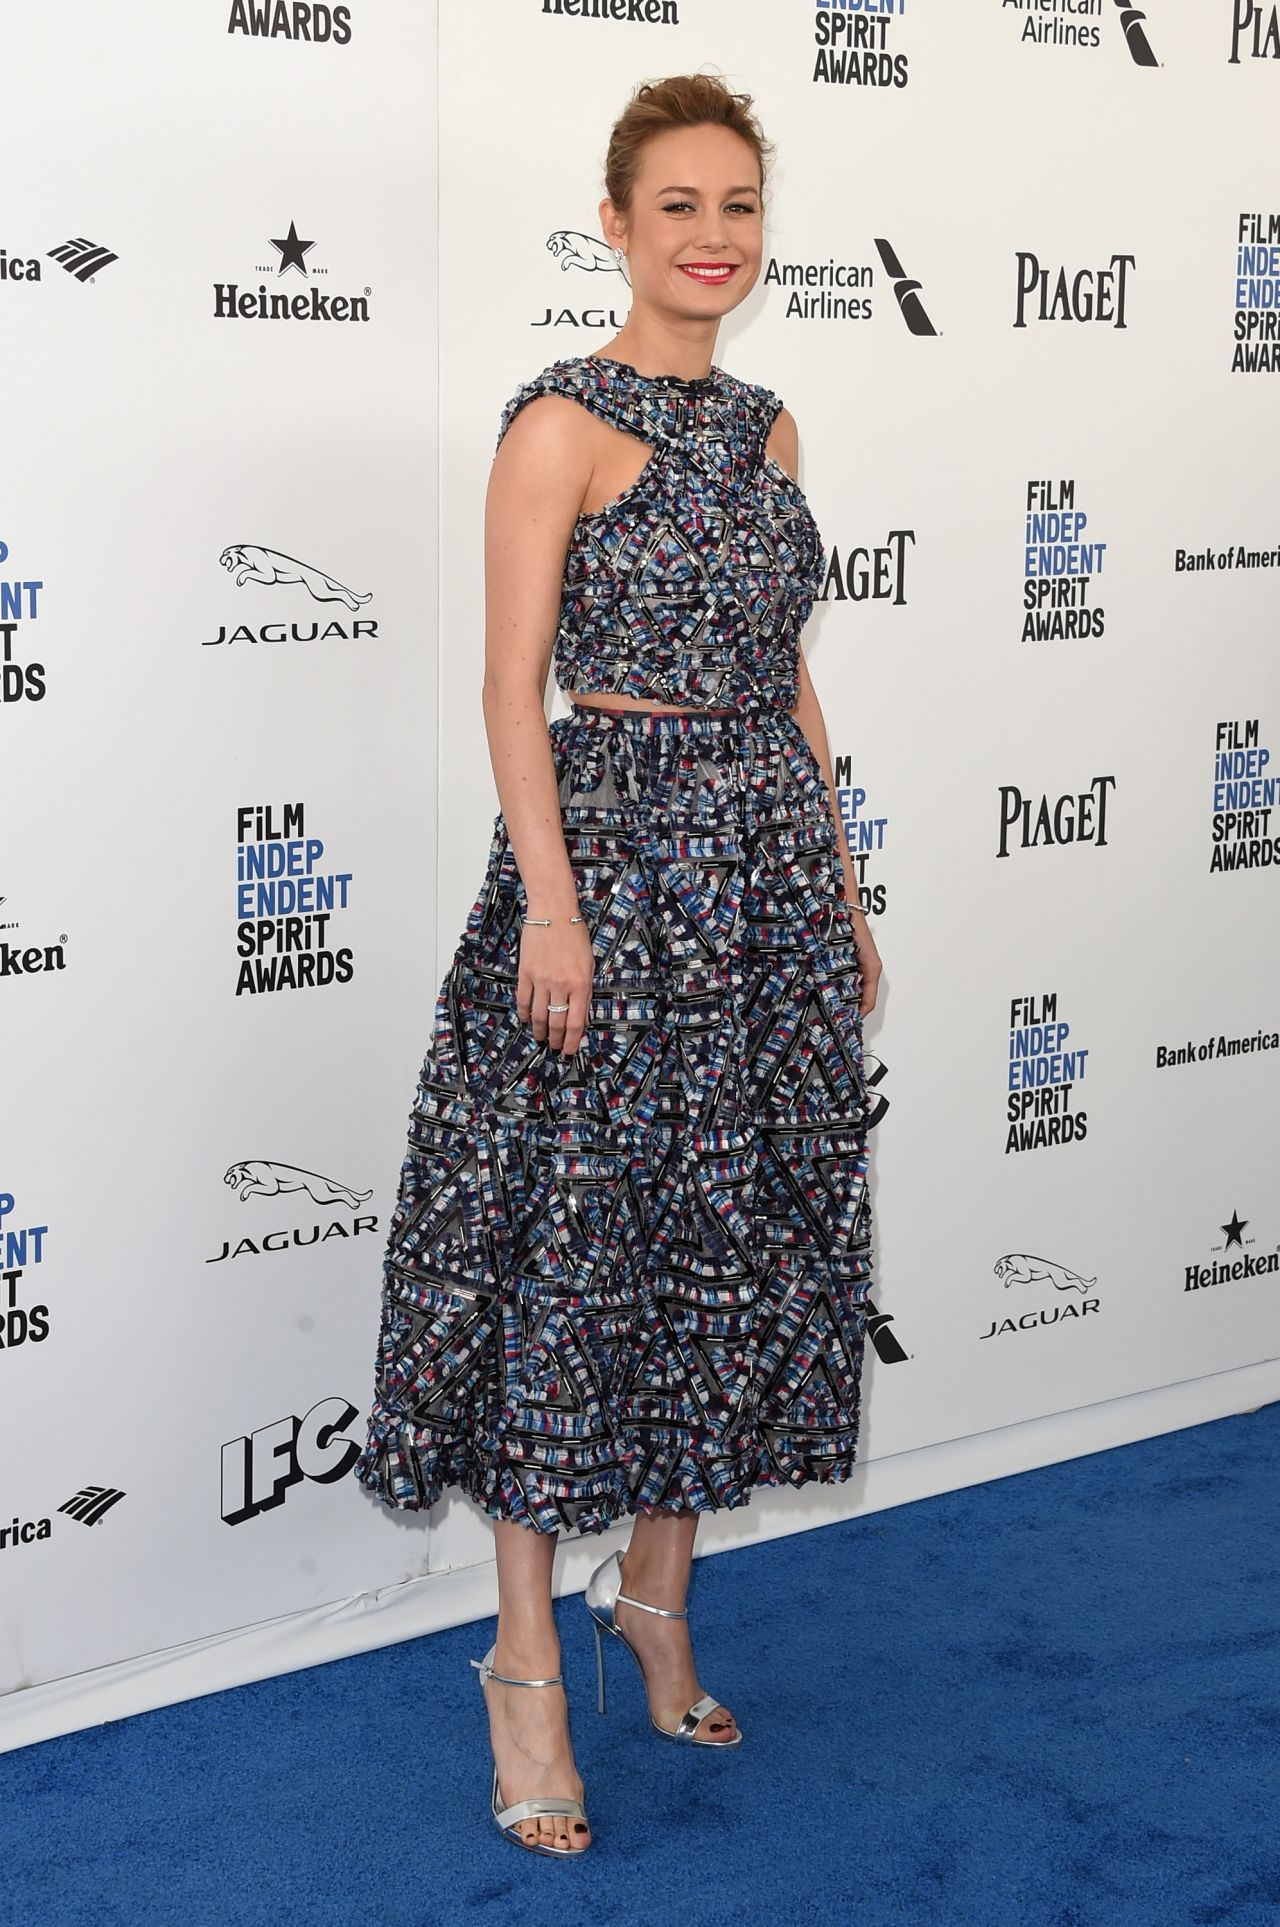 brie-larson-2016-film-independent-spirit-awards-in-santa-monica-ca-3